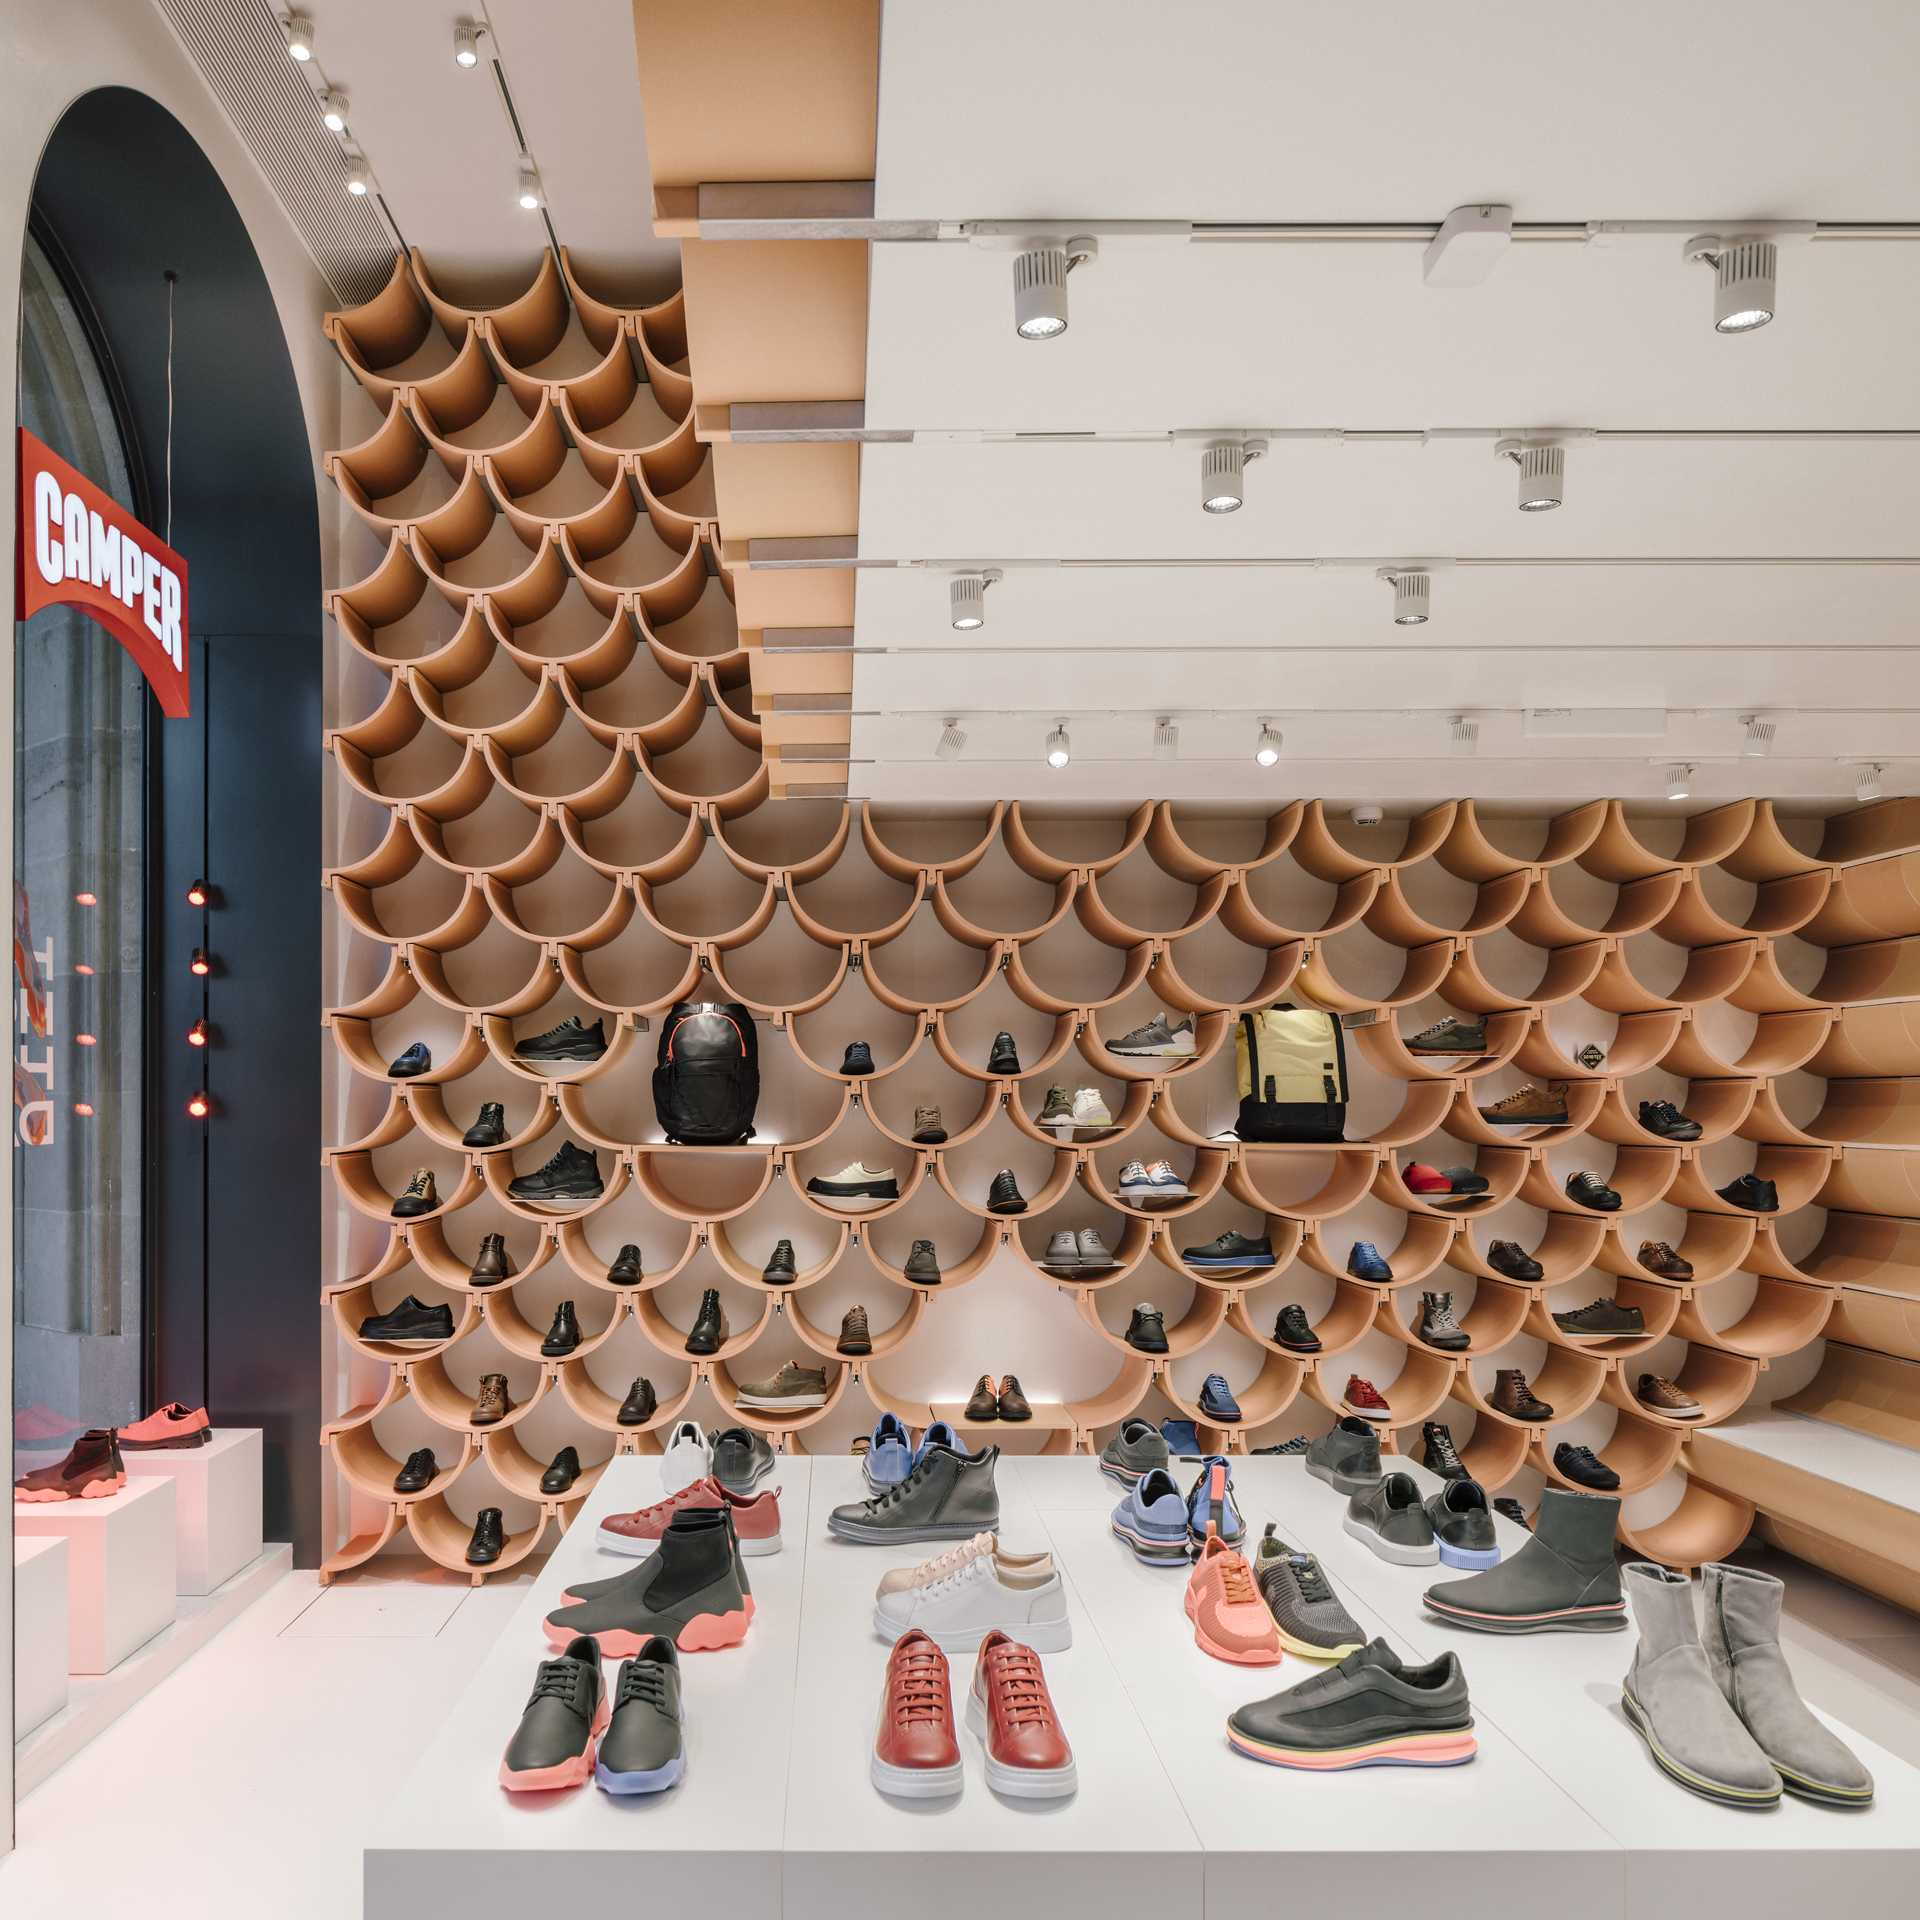 Camper shop in Paseo de Gracia  - 58 02 34